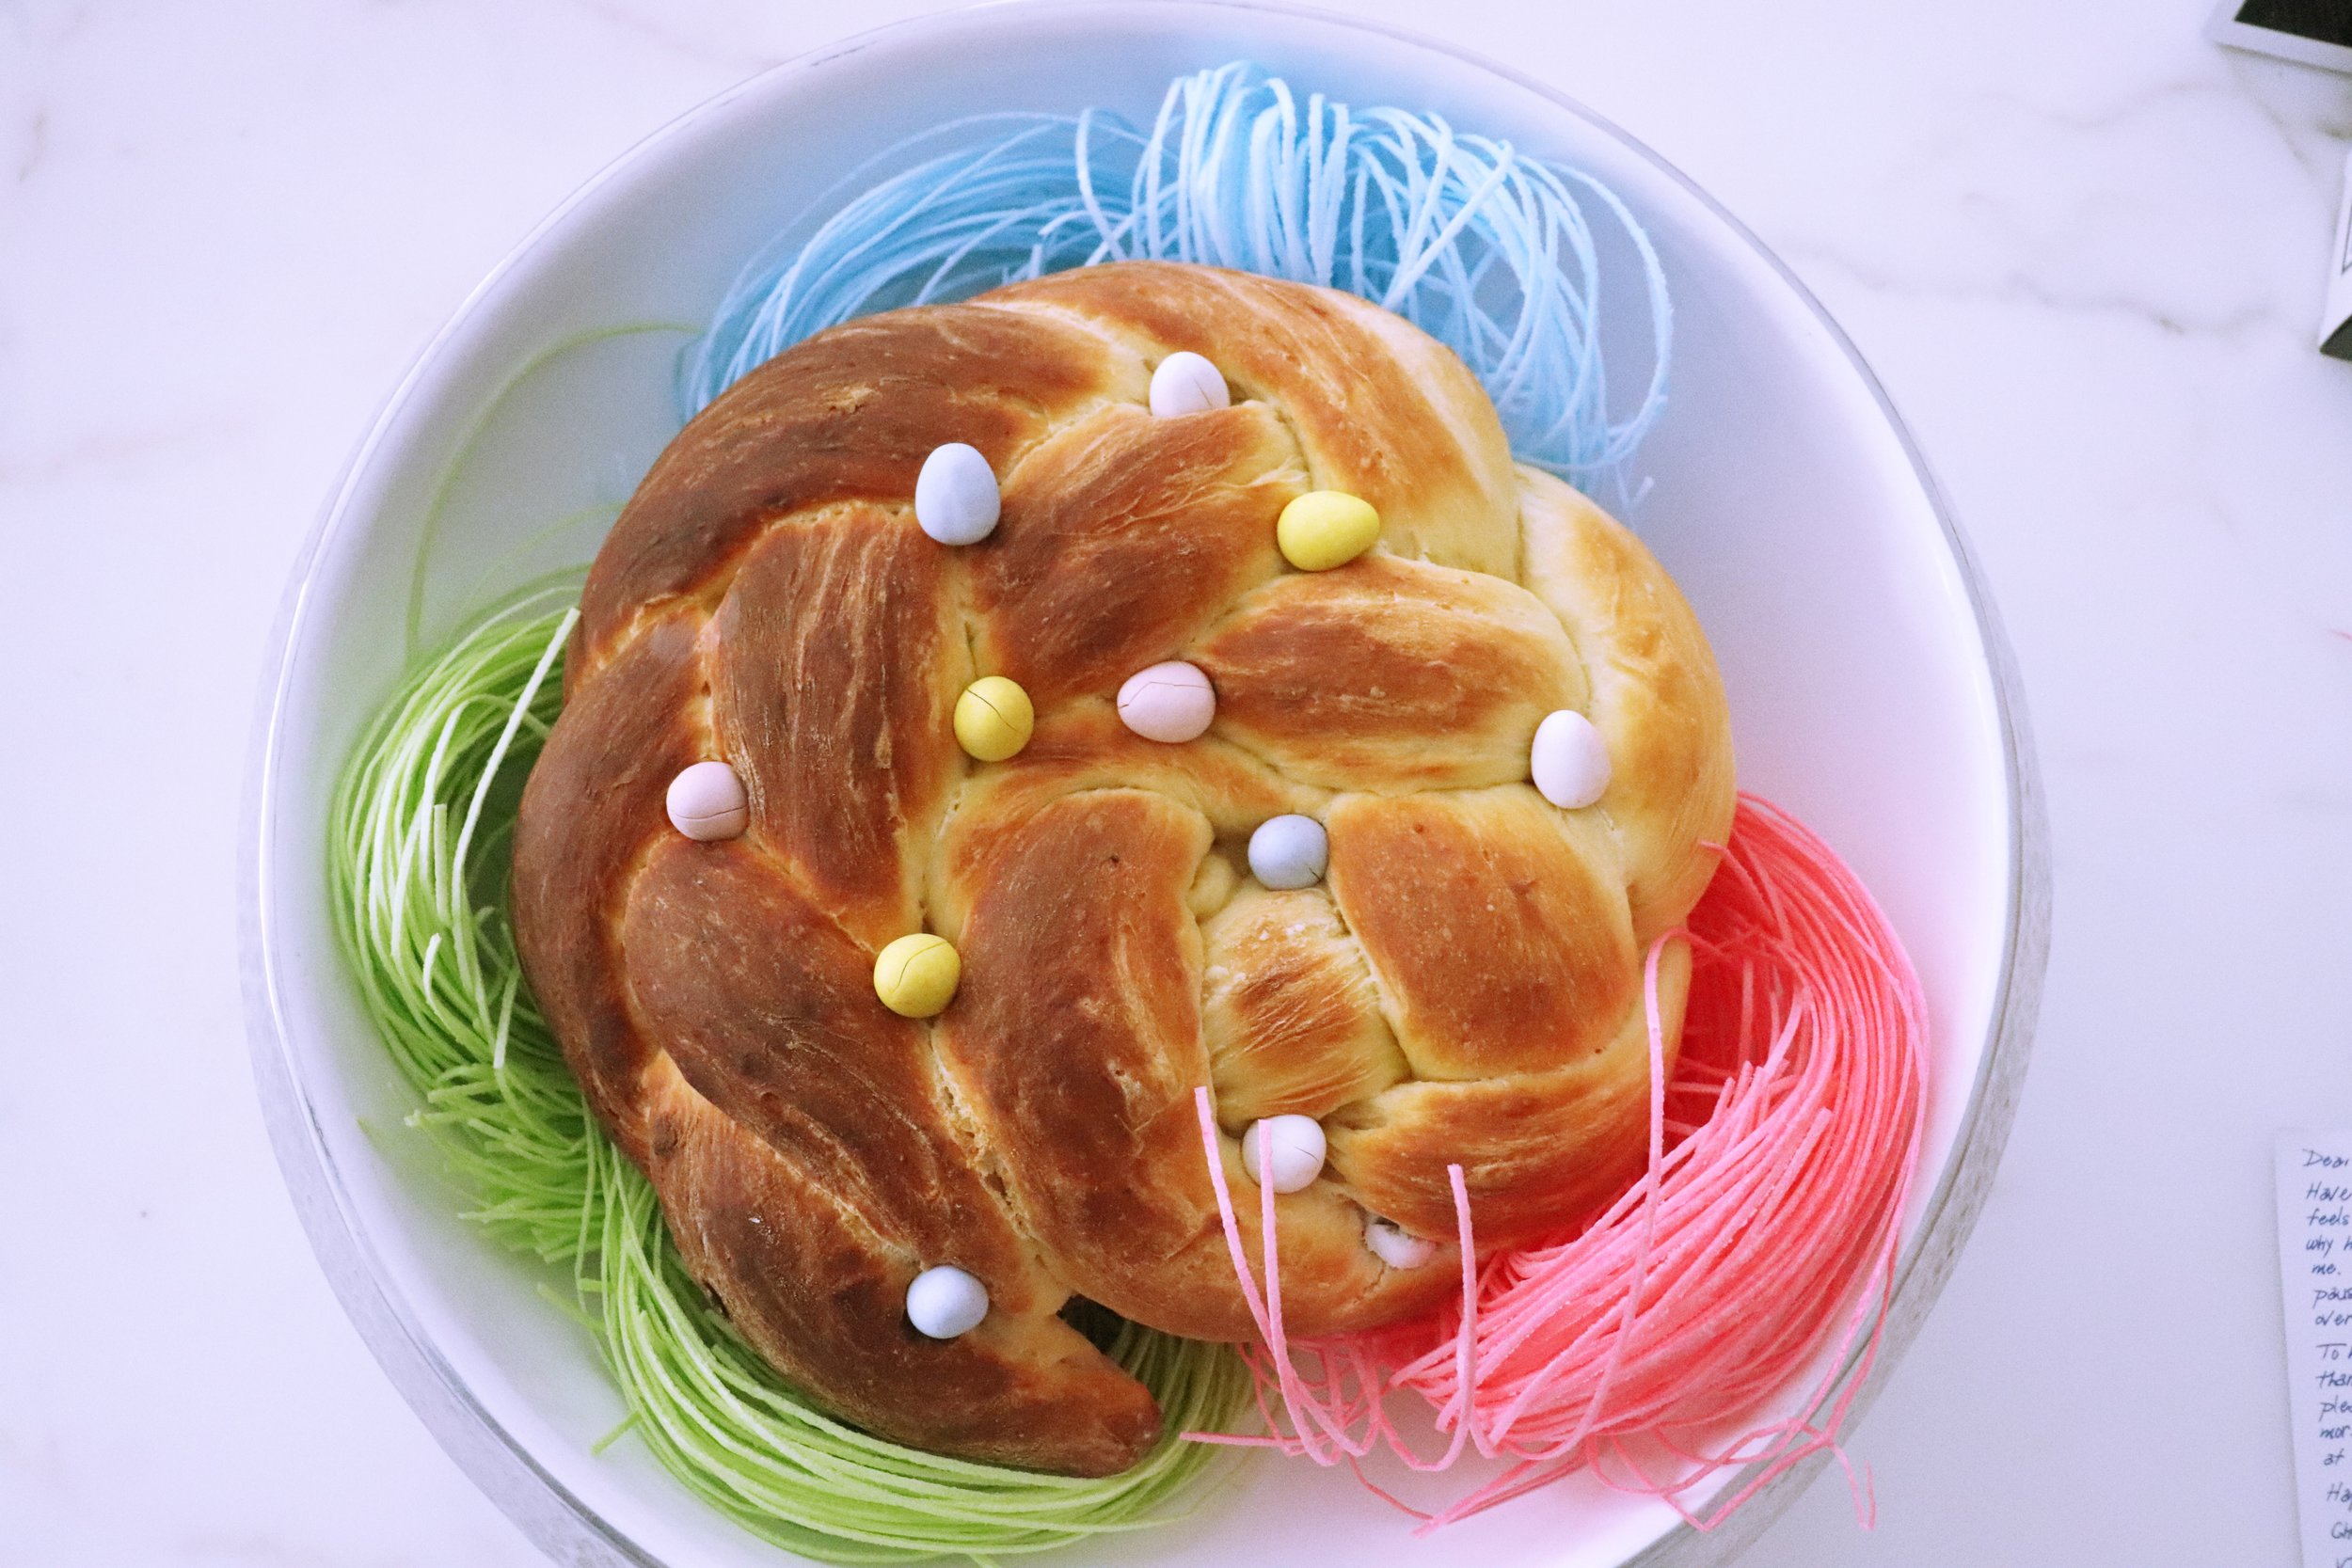 Easter Basket Bread Cake 23.jpg